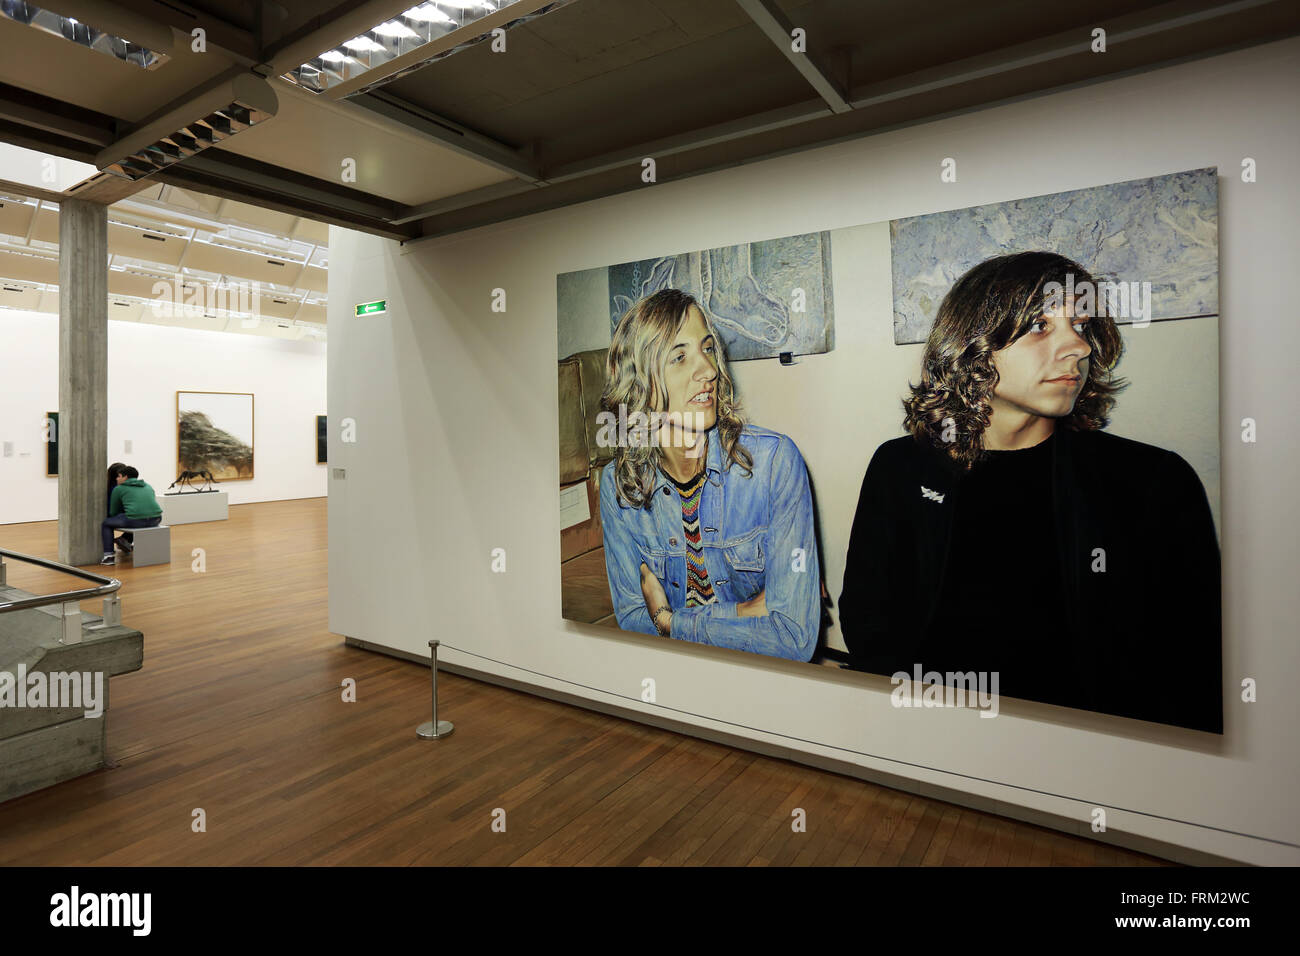 Photography Exhibition In The Kunsthaus Zurich The Modern Art Museum